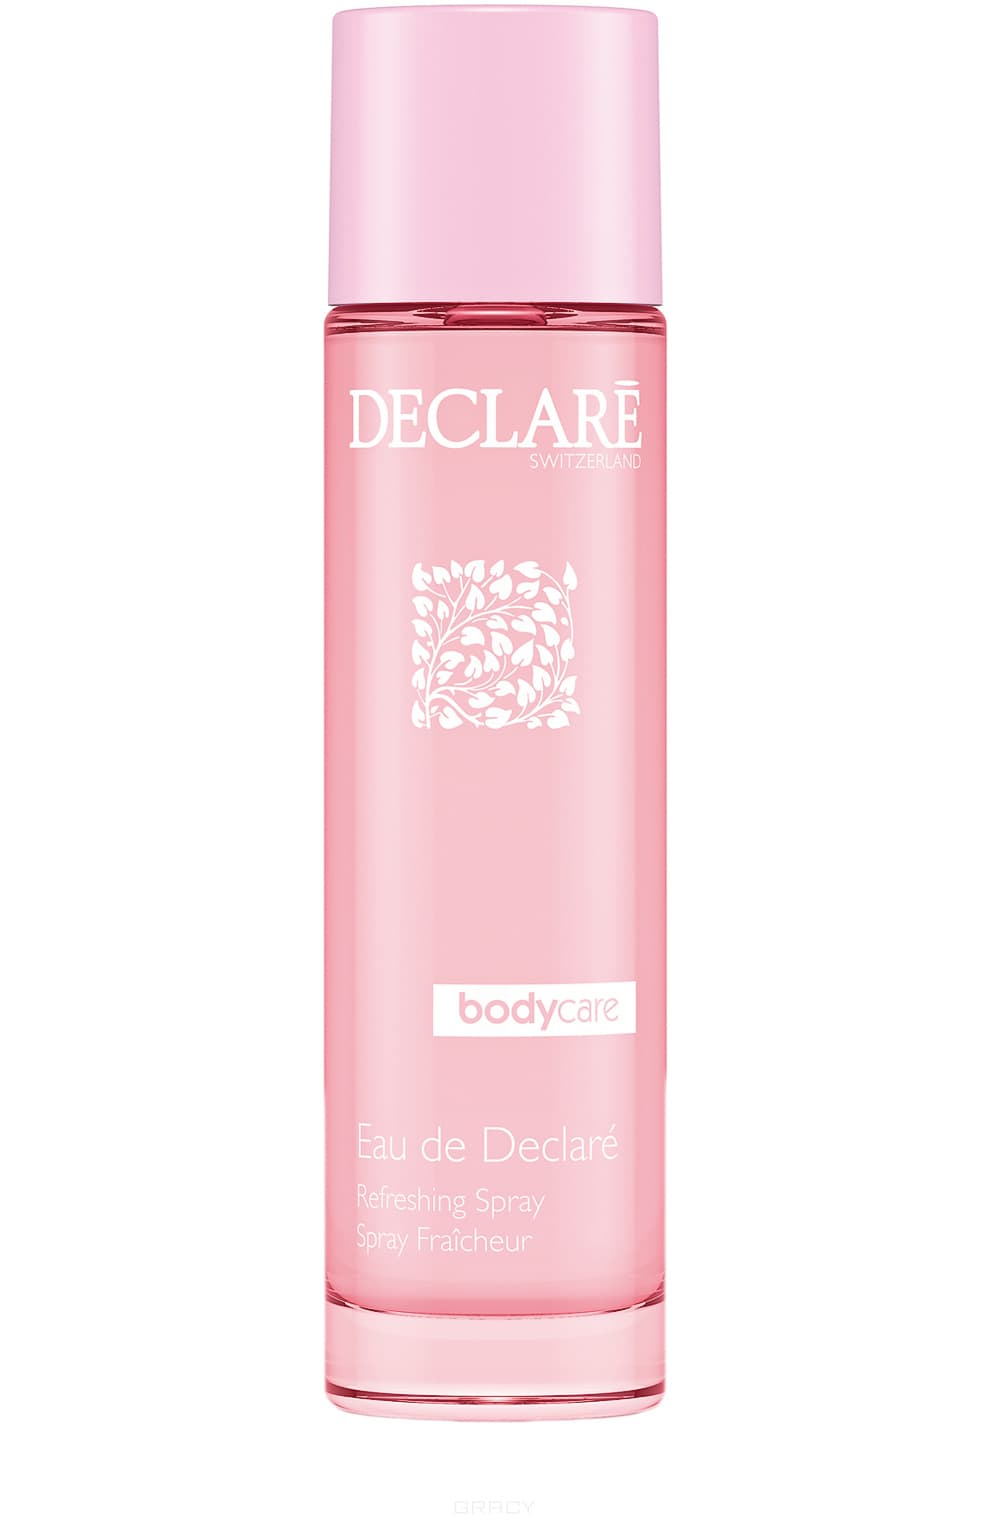 Declare, Освежащий спрей дл тела Eau de Declar? Refreshing Spray, 100 млRelaxing Body Harmony - успокаиваща гамма средств<br><br>